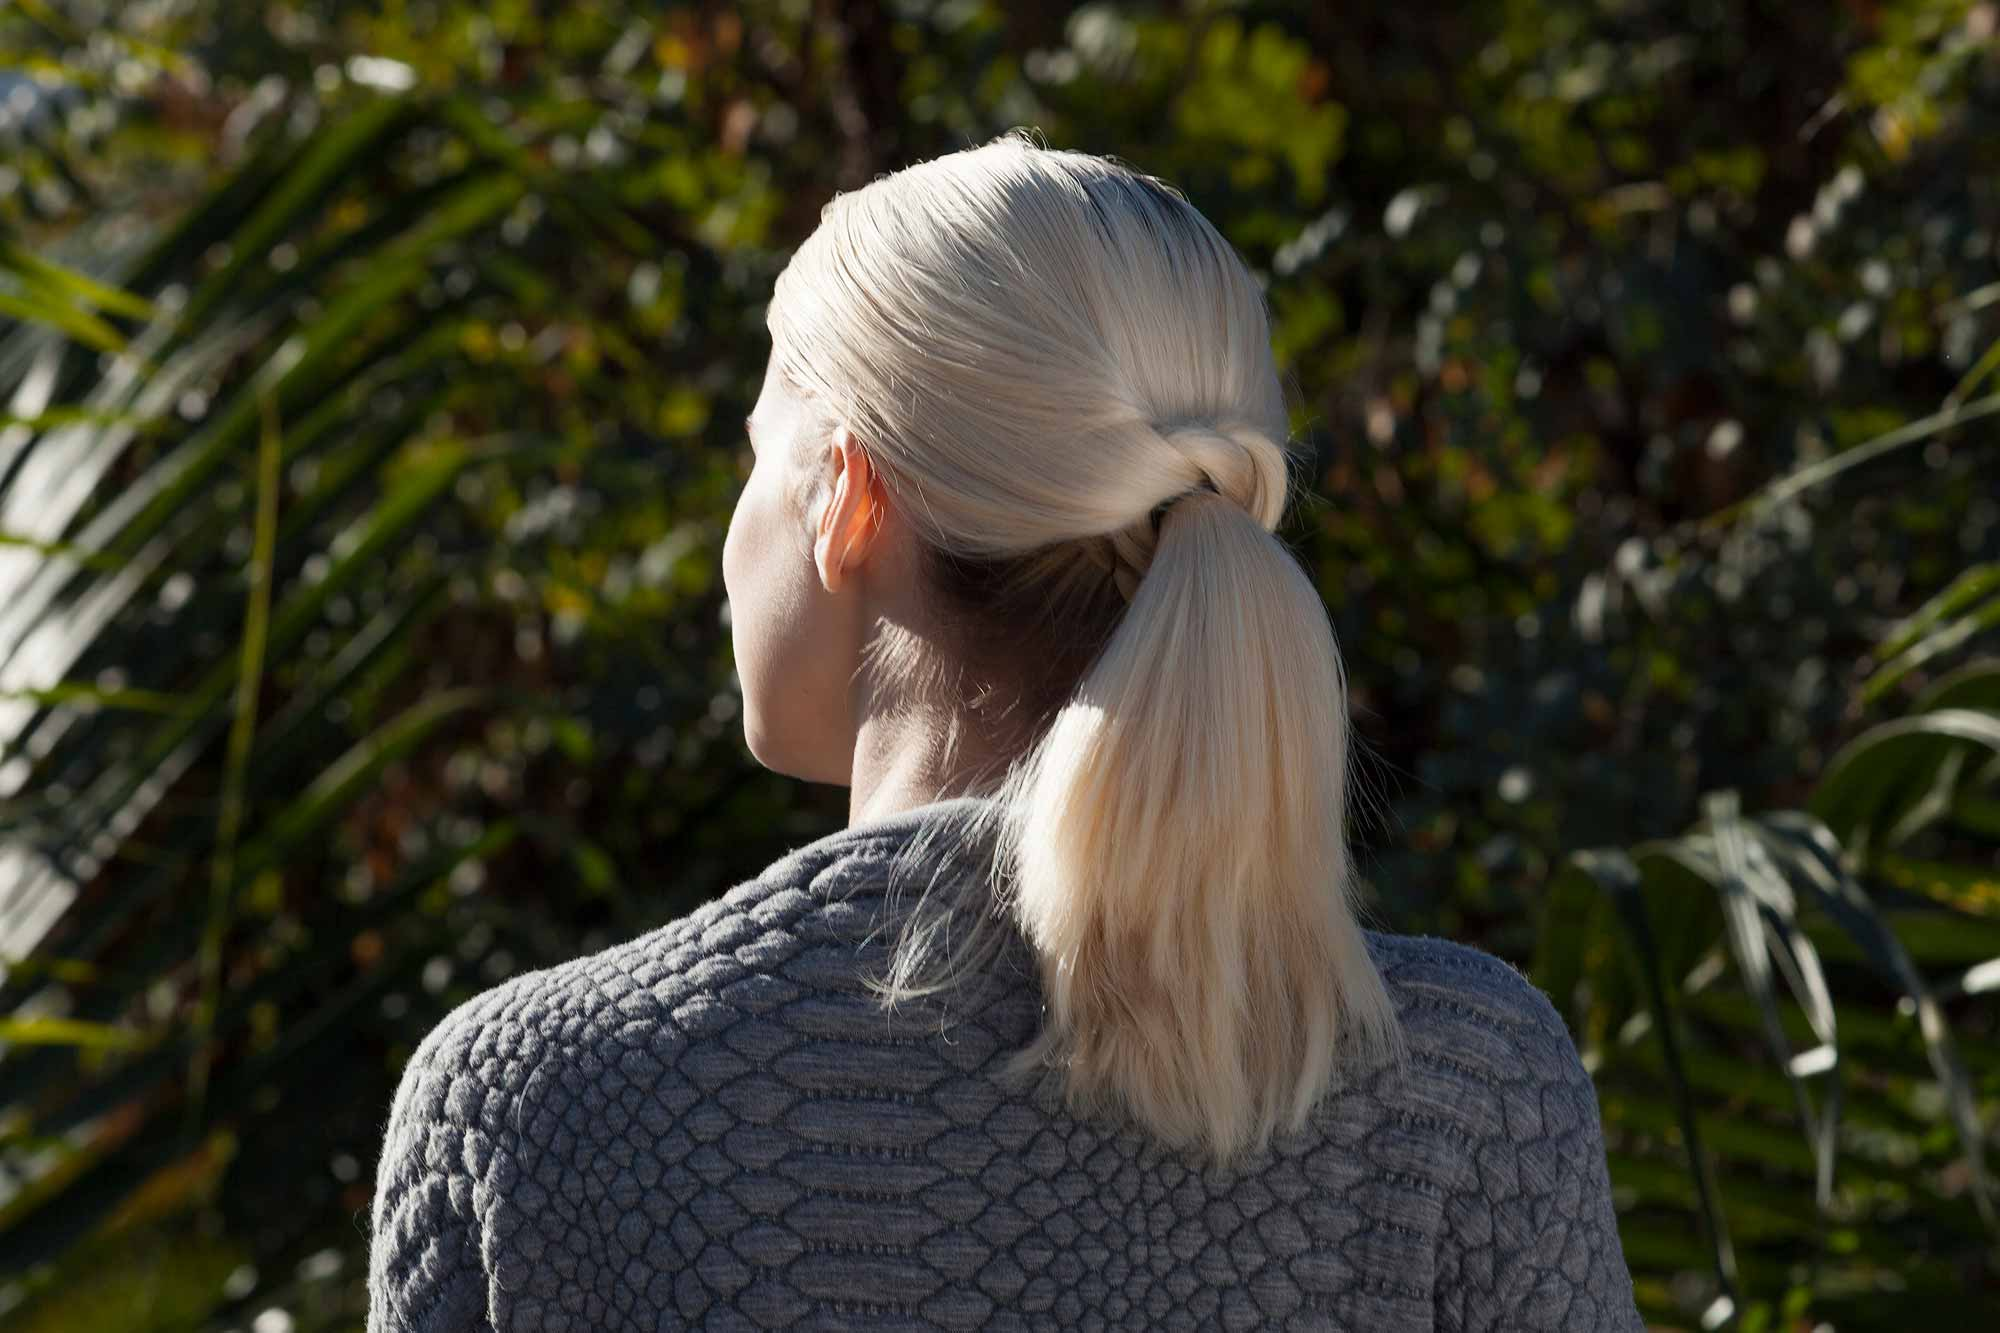 model with platinum blonde hair and a twisted ponytail hairstyle